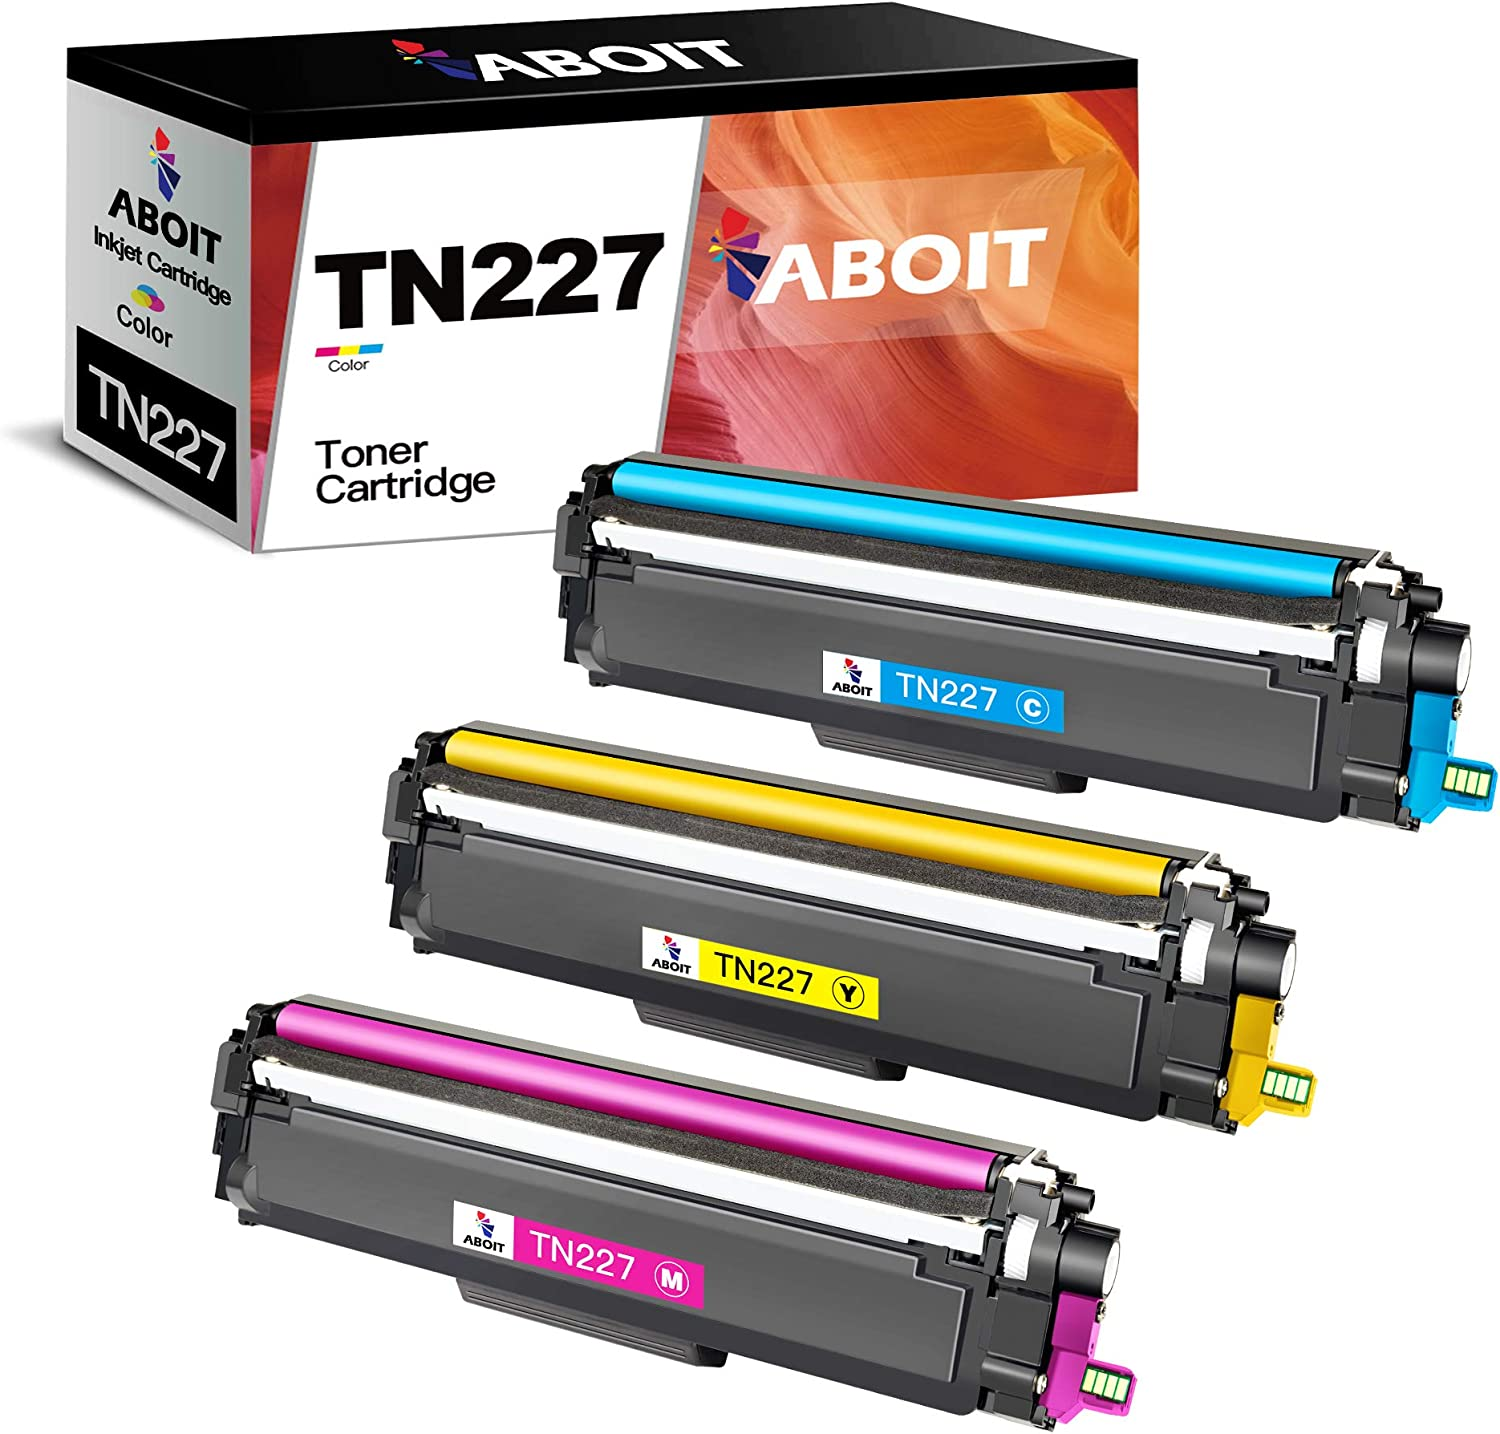 ABOIT Compatible Toner Cartridge Replacement for Brother TN227 TN-227 TN227BK TN223 TN 223 with Brother MFC-L3770CDW MFC-L3750CDW HL-L3230CDW HL-L3290CDW HL-L3210CW MFC-L3710CW Printer Tray (3 Pack)